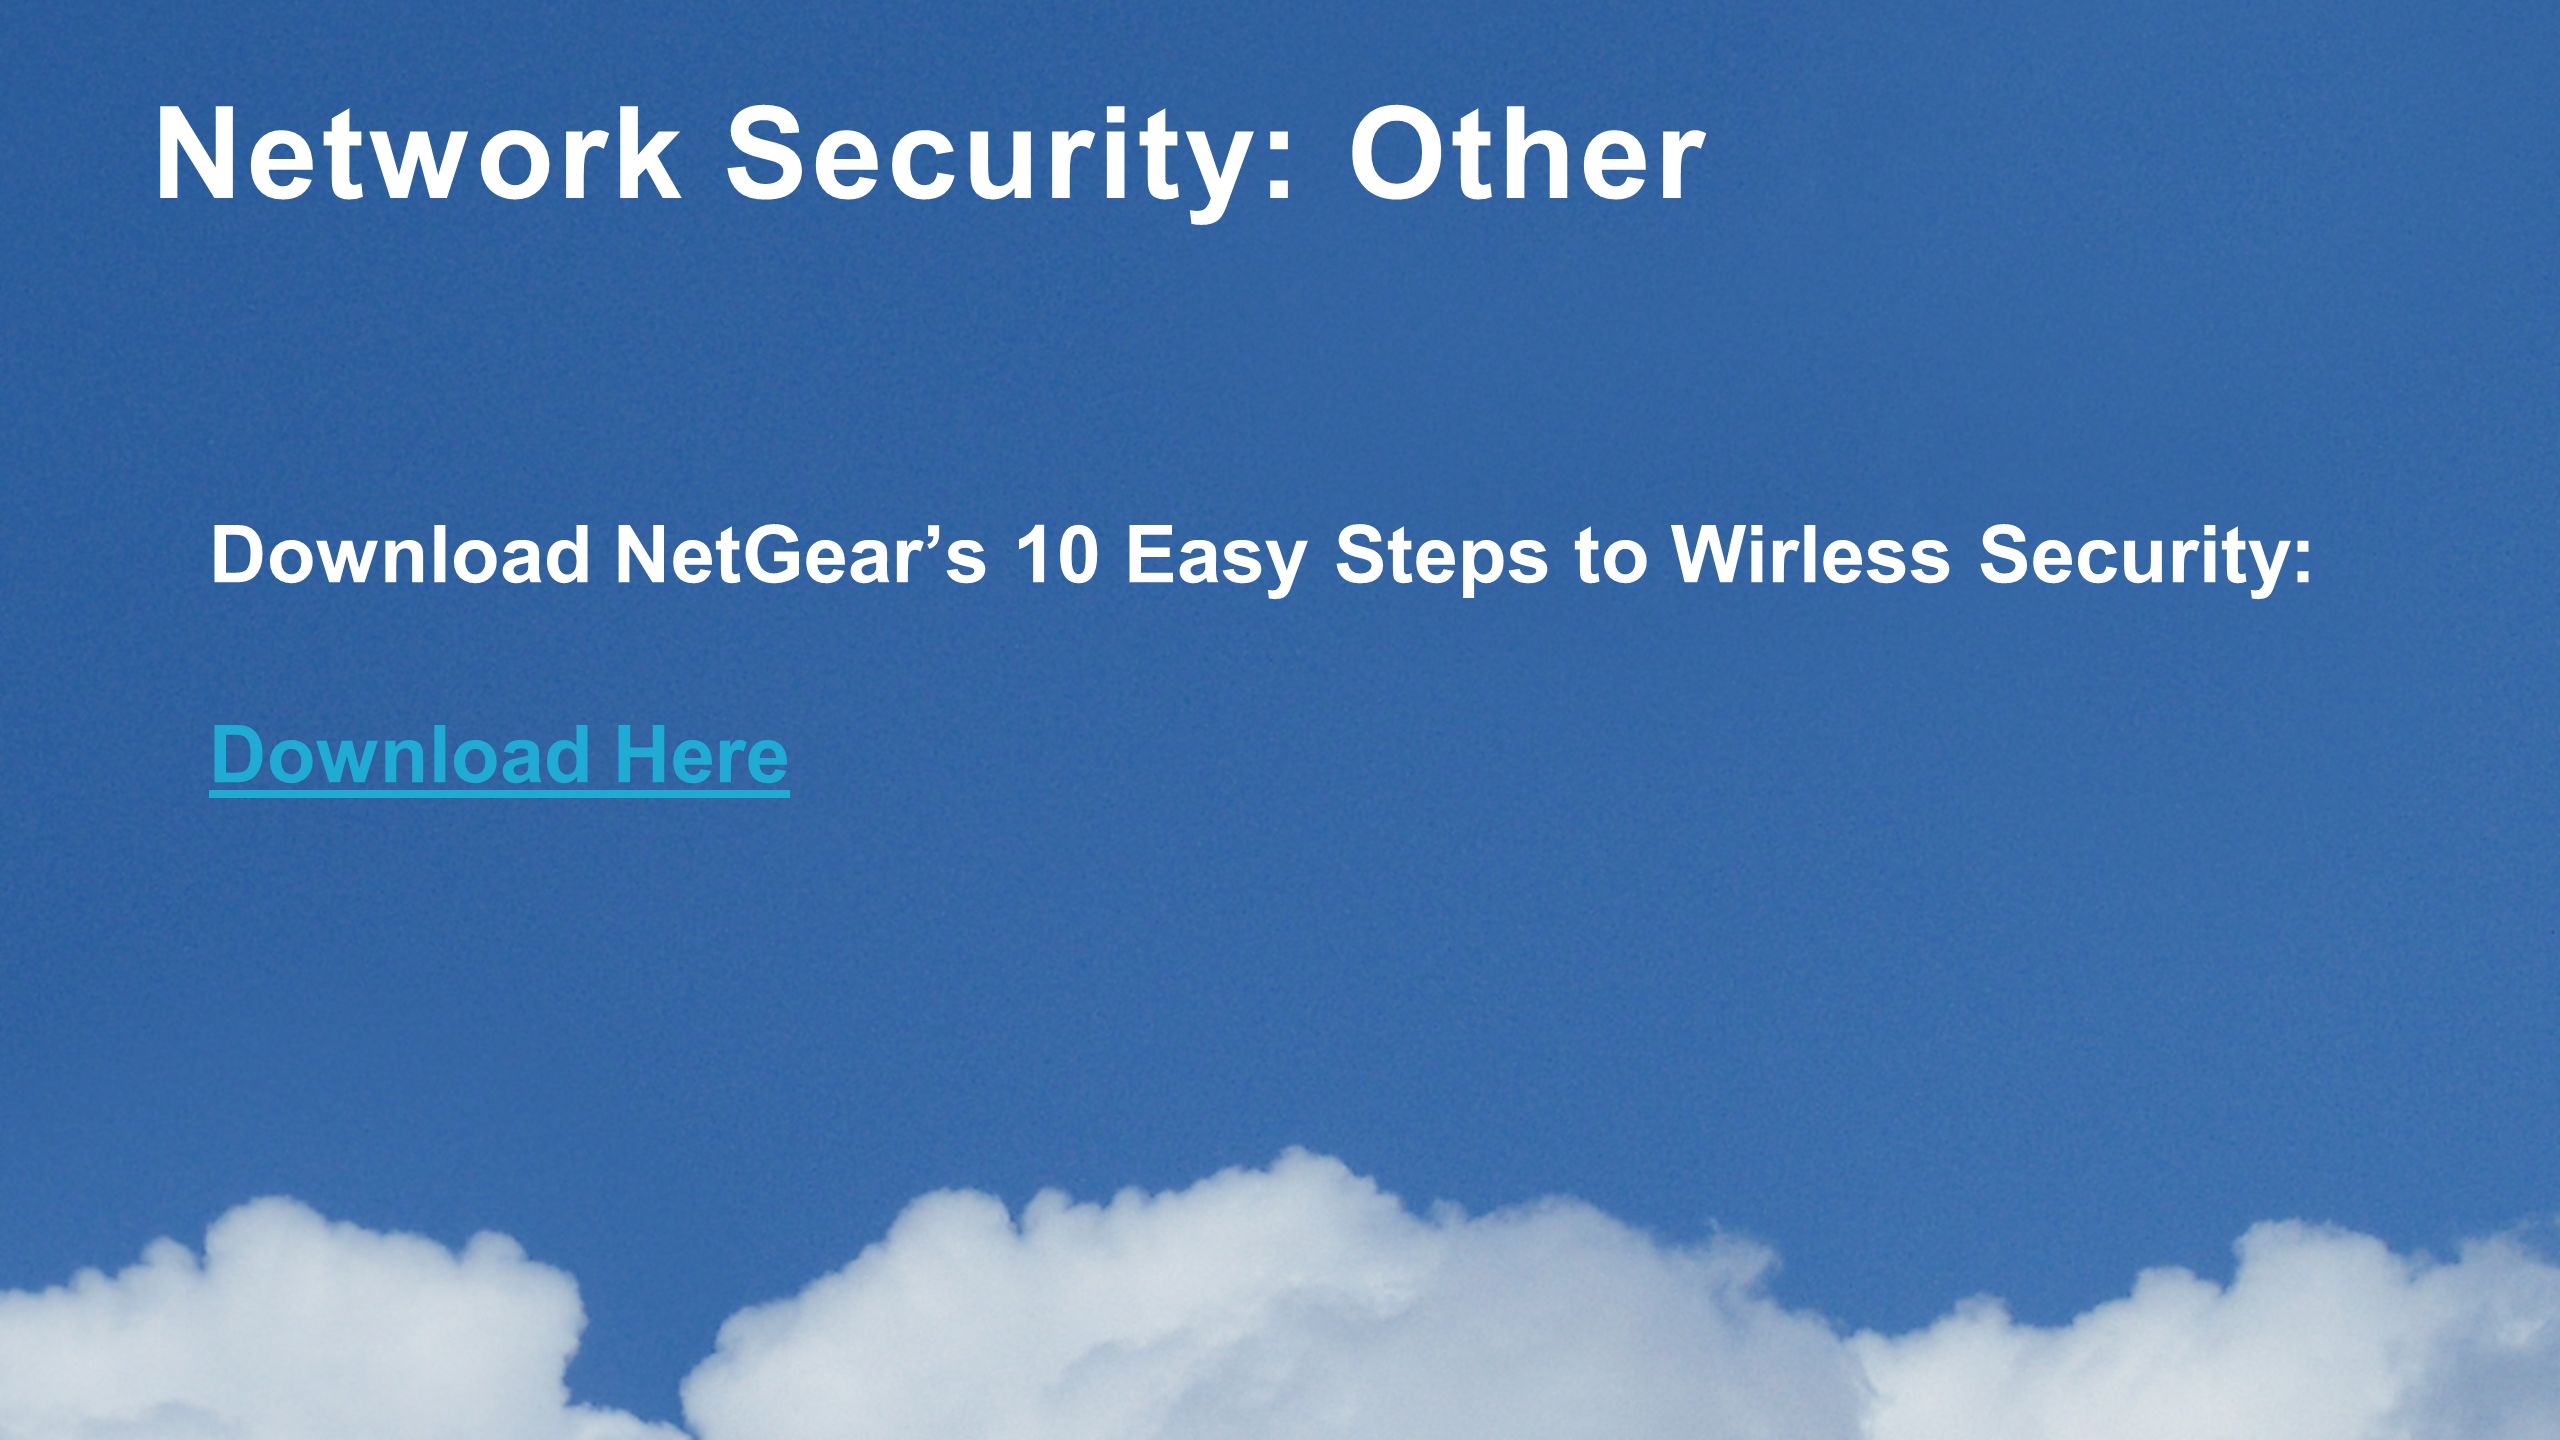 network threats 31102014 get up to speed on the basics of network threat detection such as intrusion detection systems, network monitoring, security analytics and more.